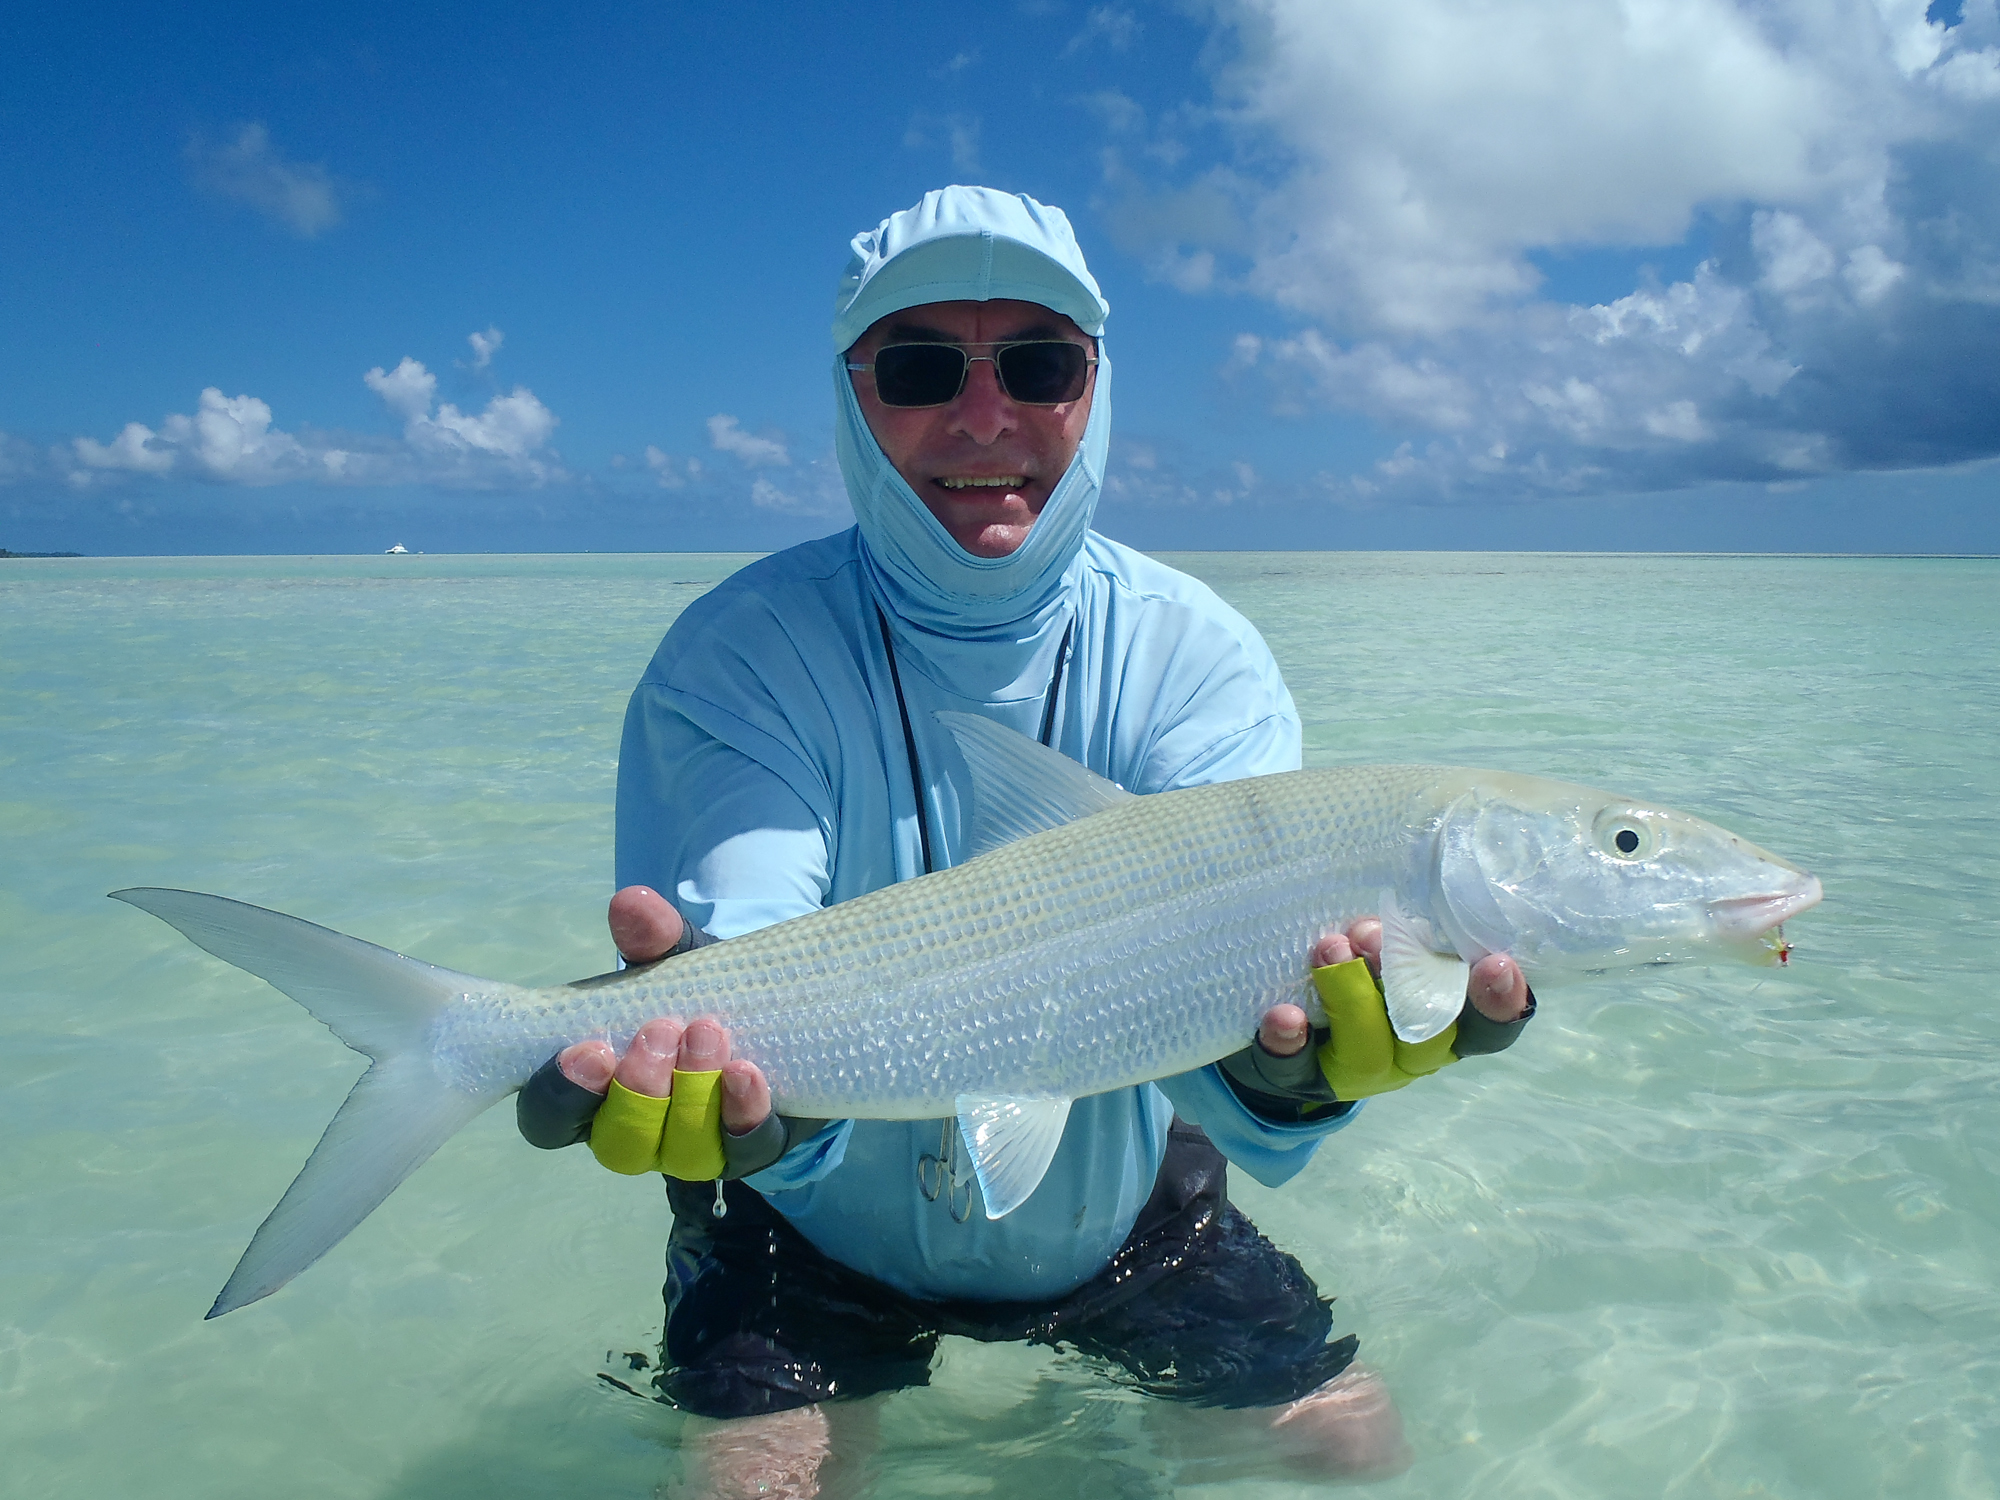 alphonse-experience-fly-fishing-species-bonefish-04